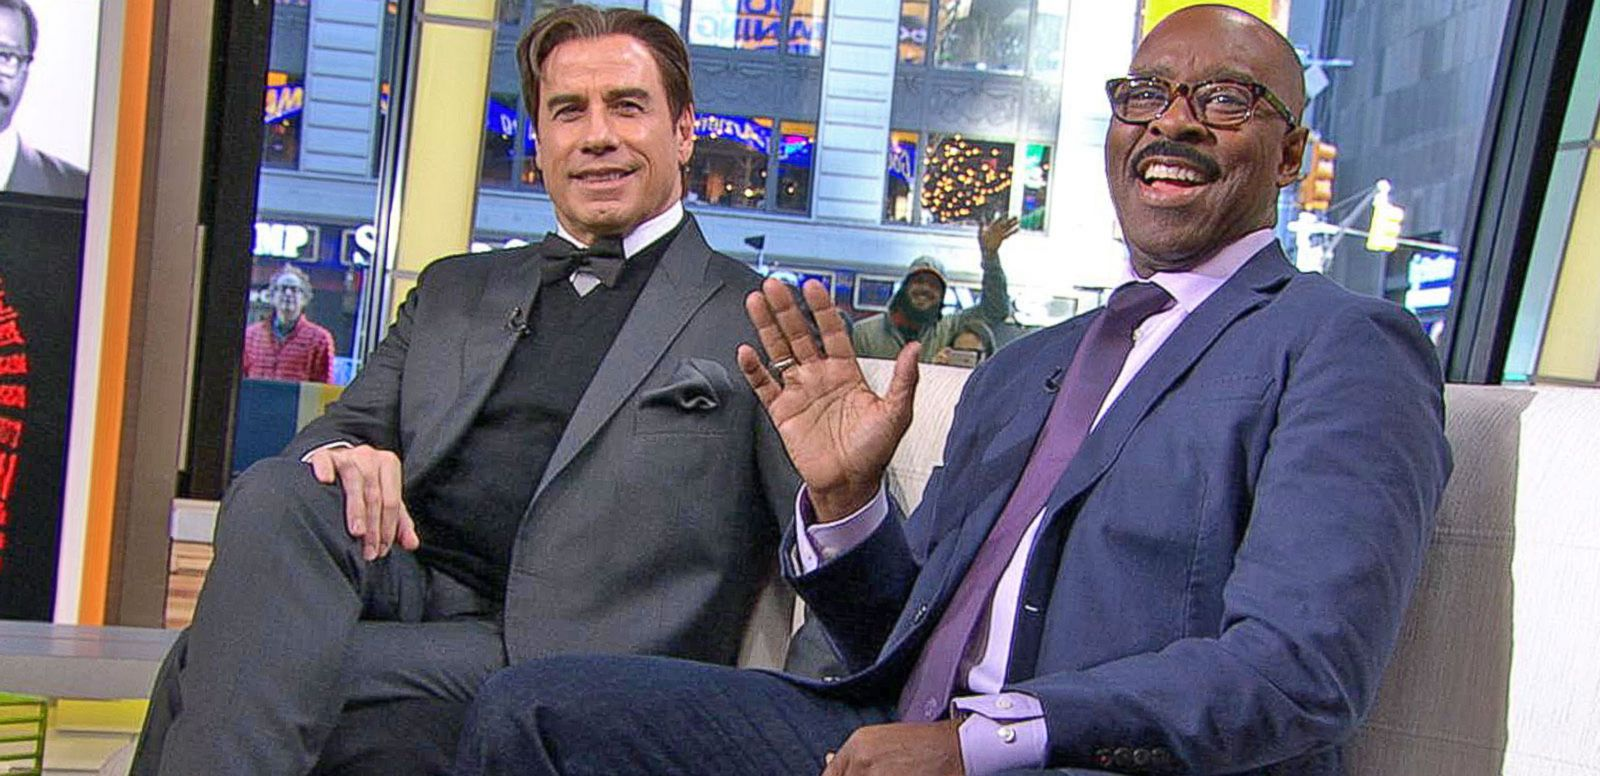 VIDEO: John Travolta, Courtney B. Vance Discuss The People v. O.J. Simpson